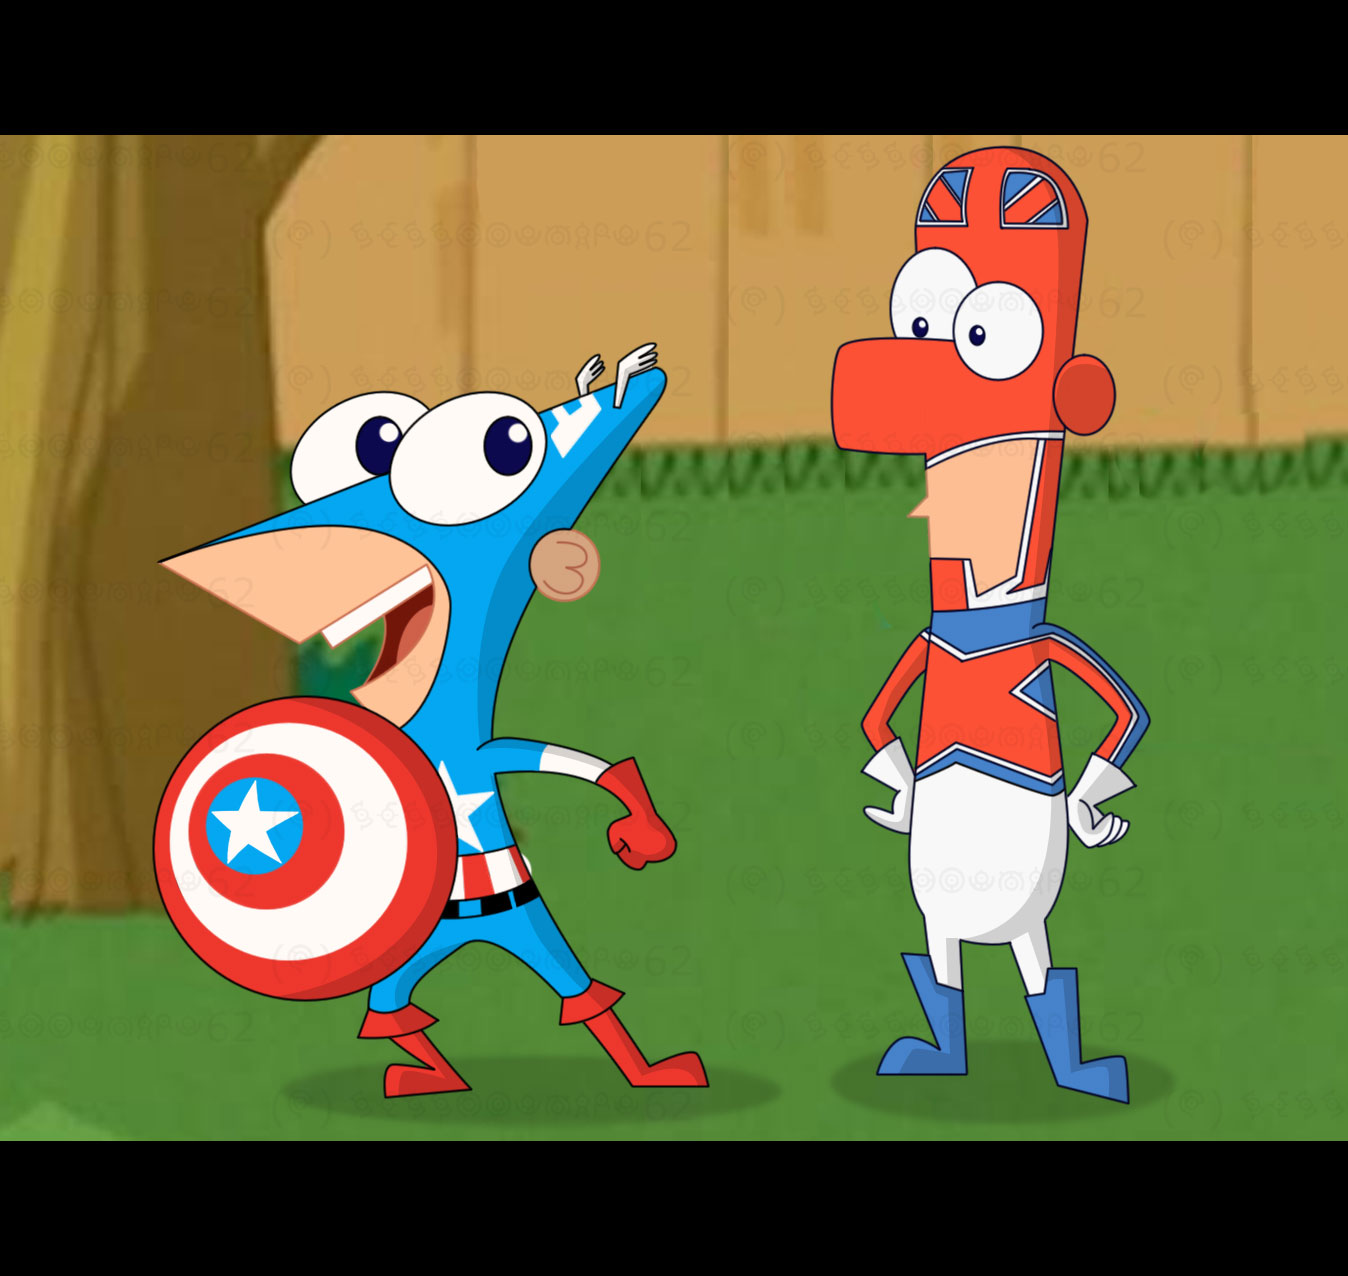 Phineas and ferb phineas and ferb marvel superheroes